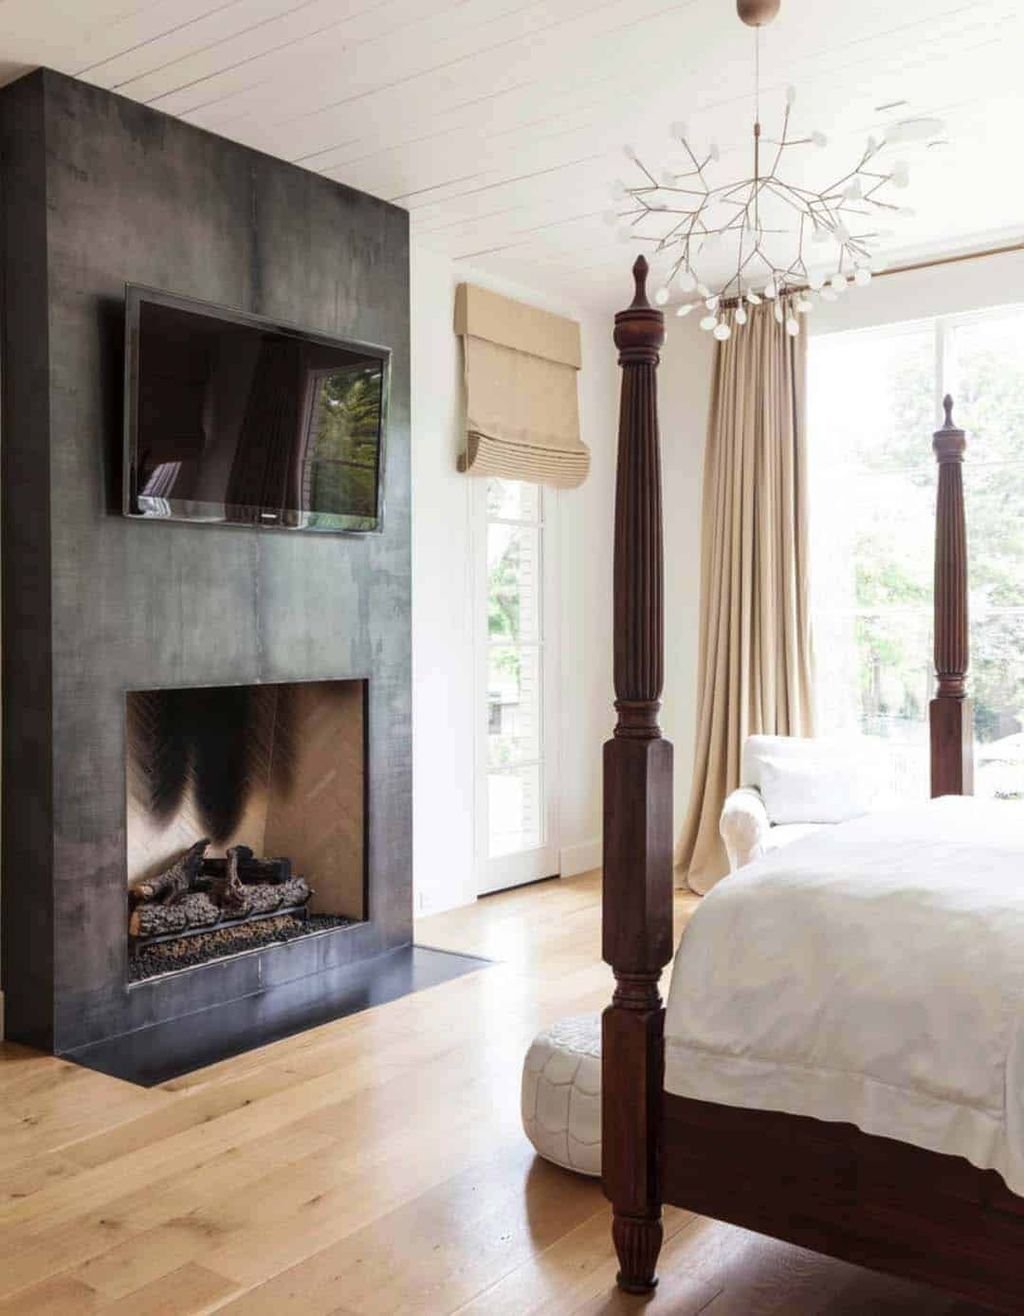 Awesome Bedroom Design With Fireplace Ideas Perfect For This Winter 30